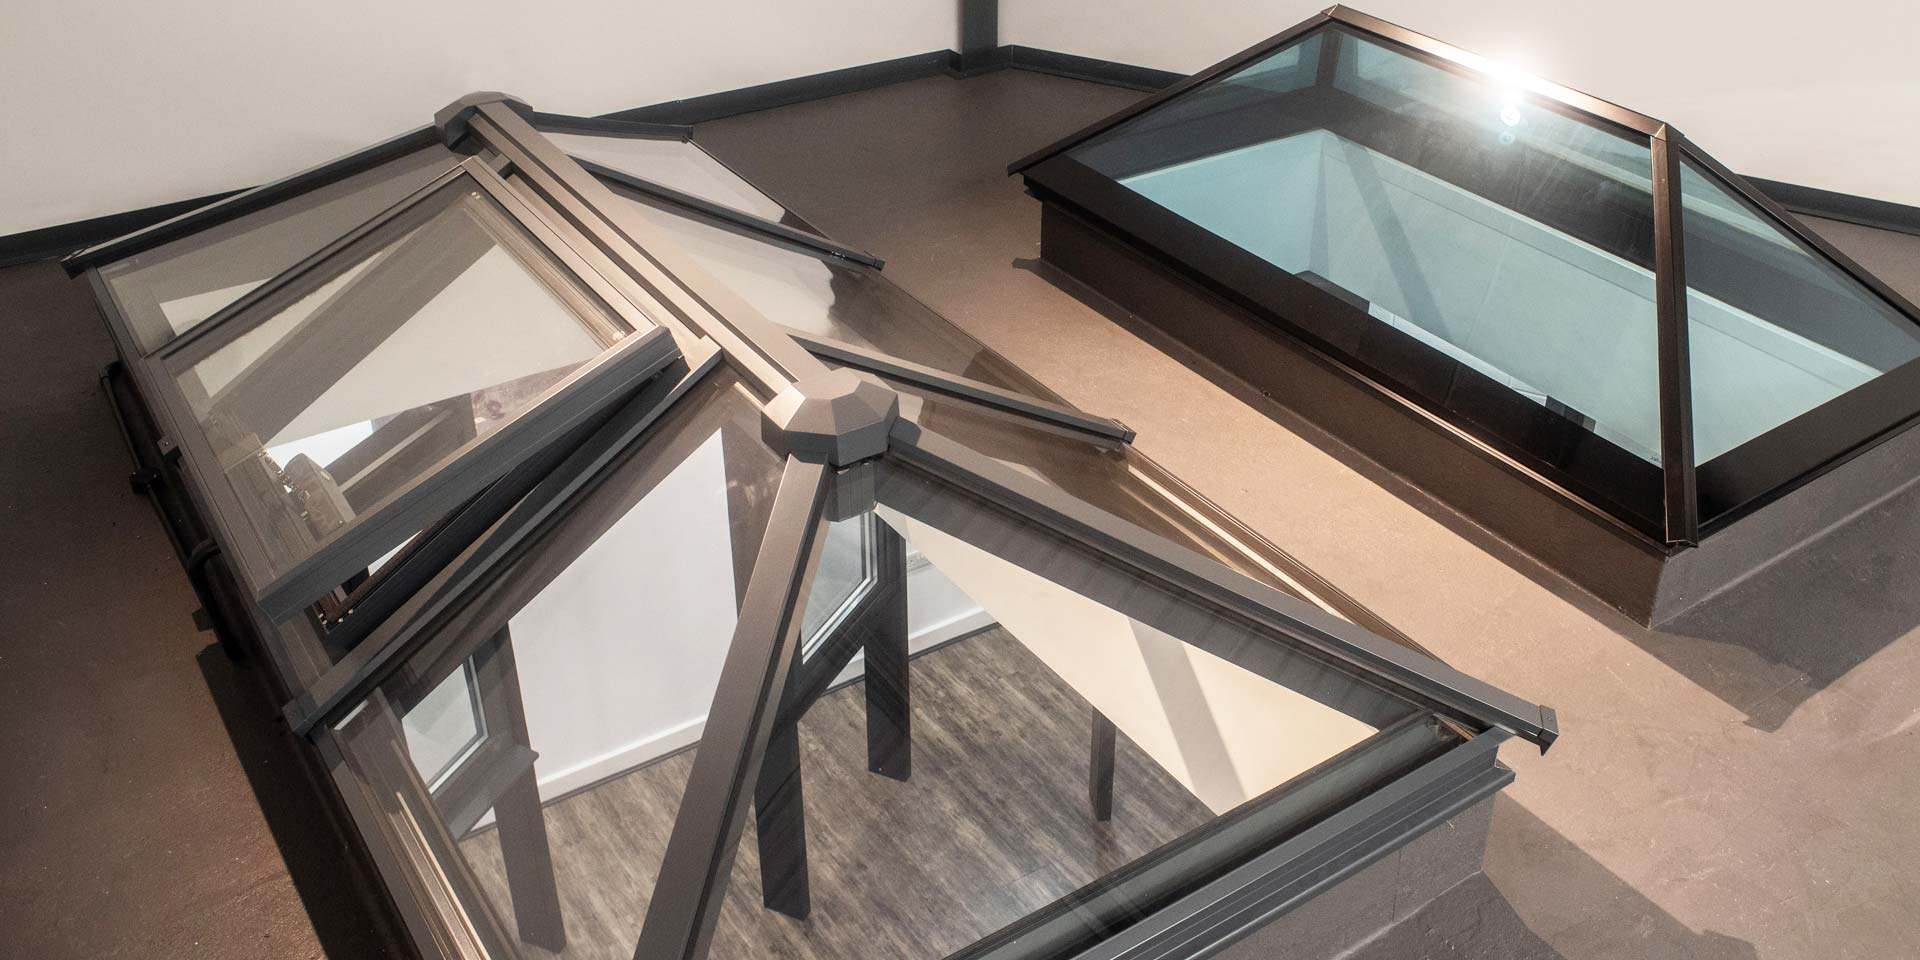 roof systems in showroom